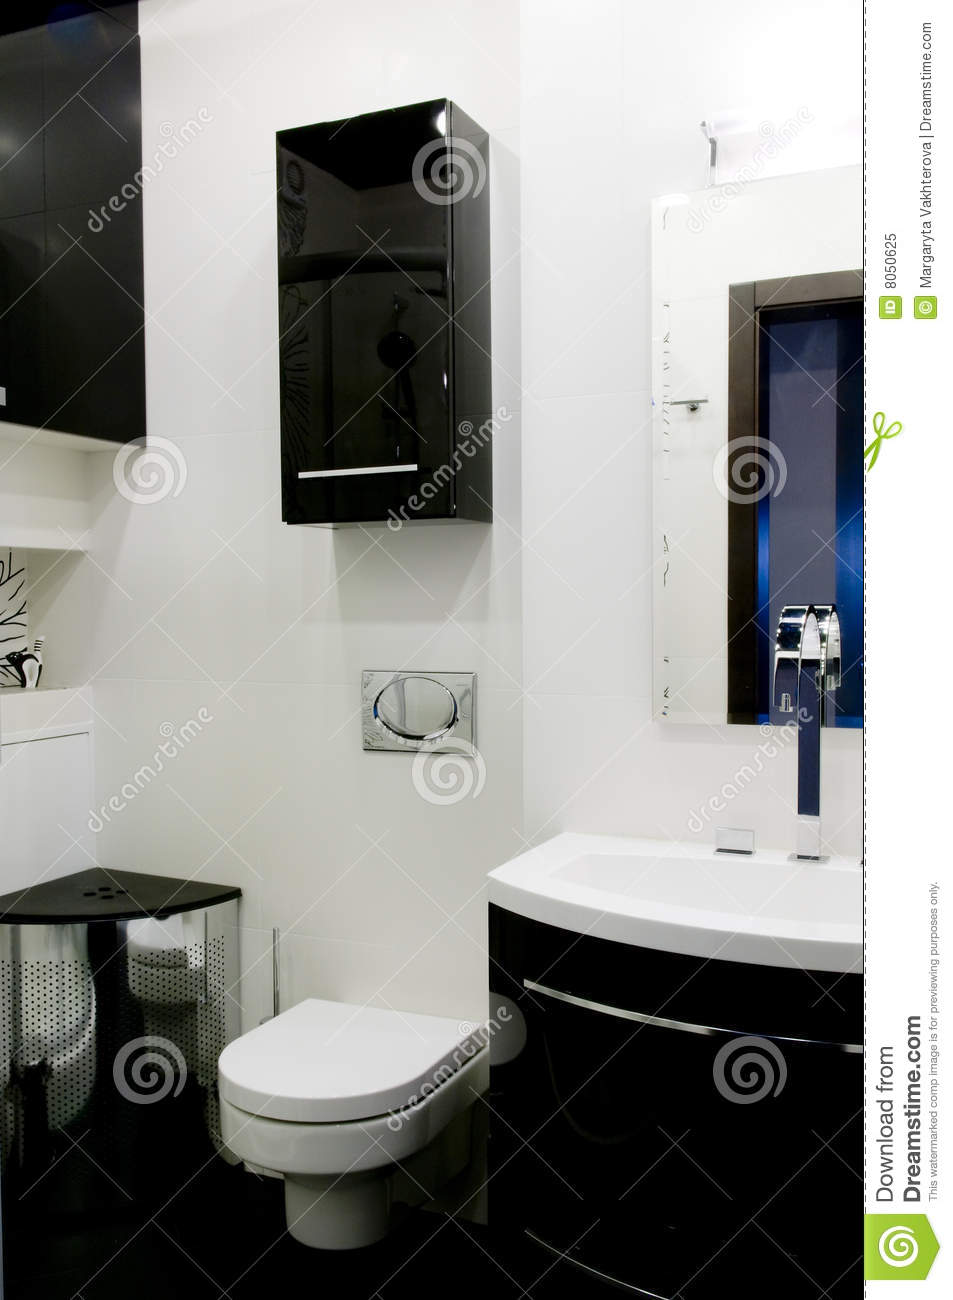 Toilette moderne photo libre de droits image 8050625 for Photo toilette moderne